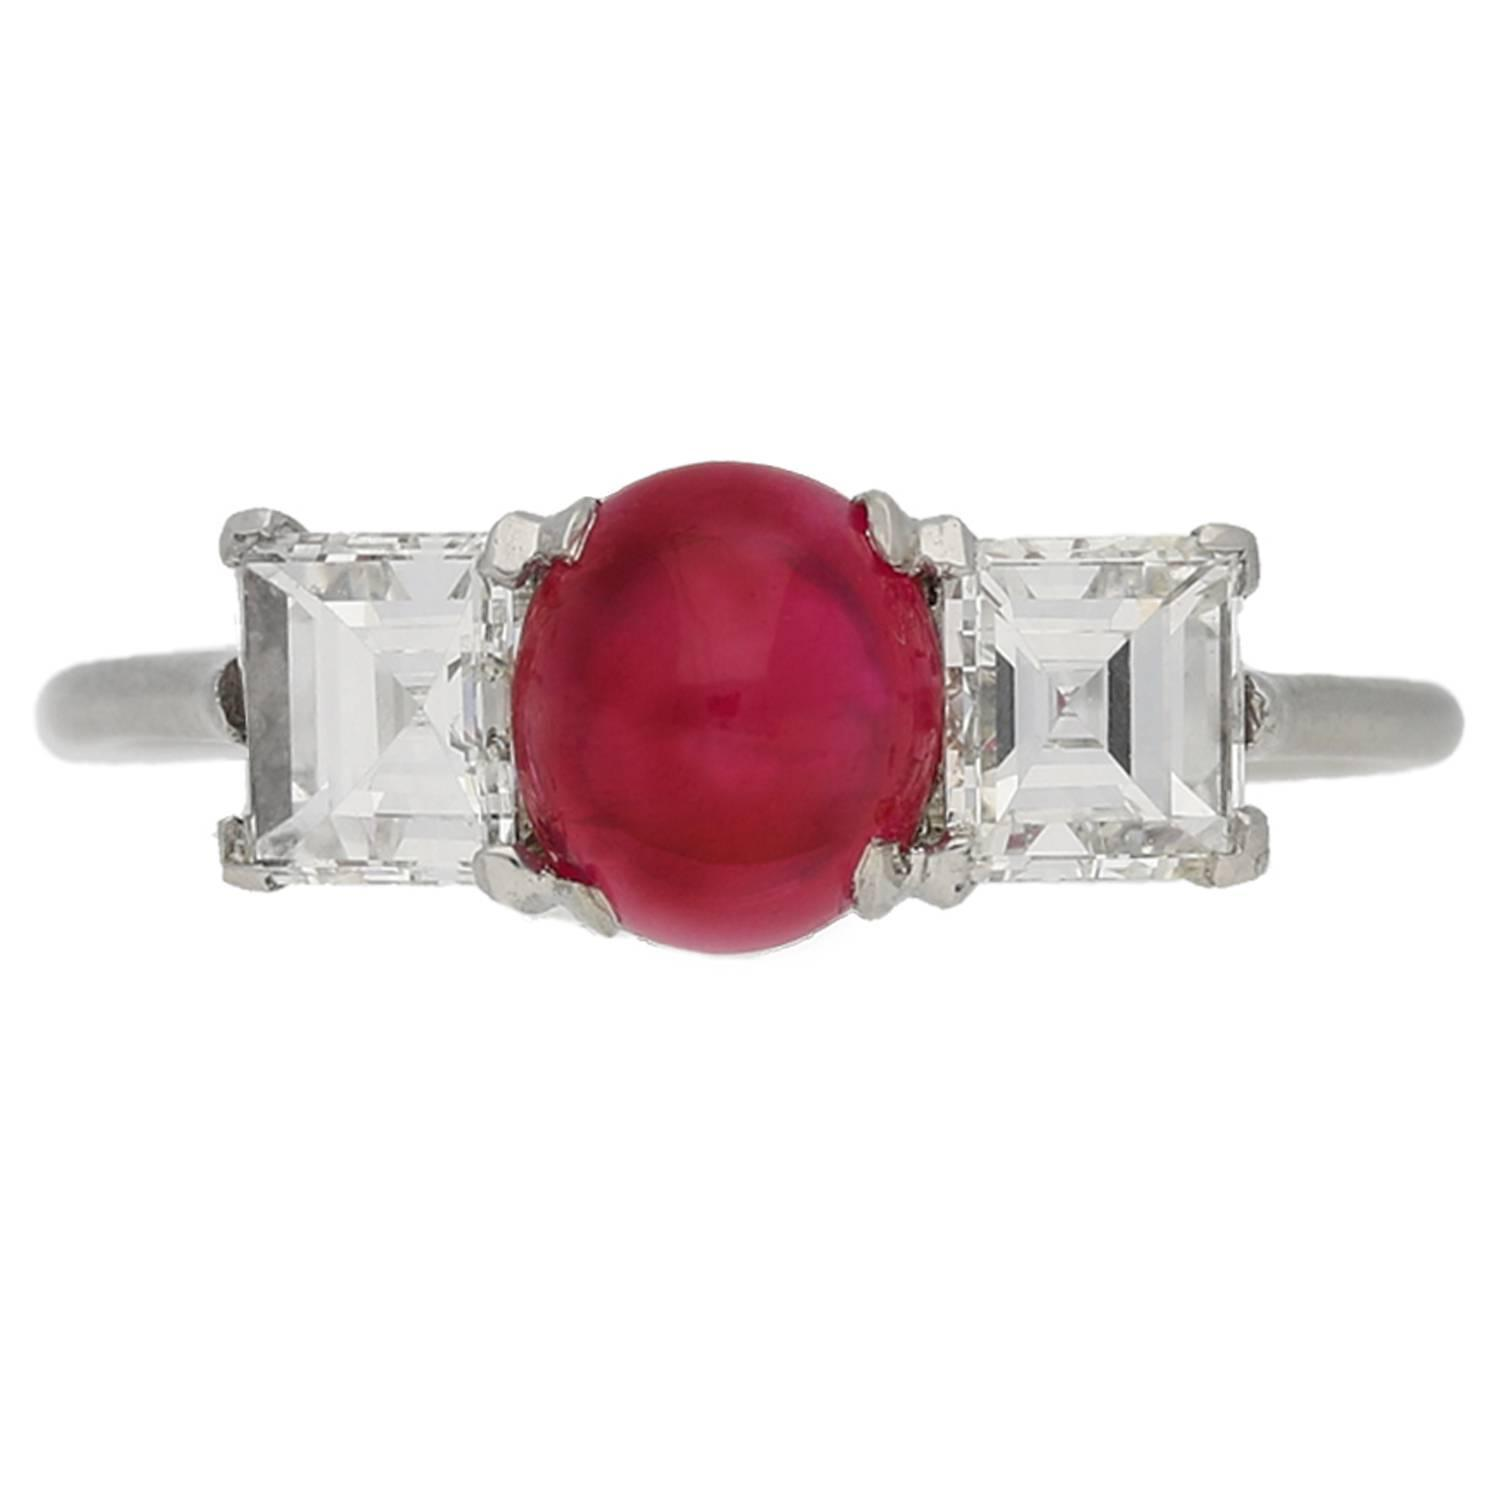 Cartier Paris Art Deco Cabochon Burma Ruby Diamond Ring For Sale At 1stdibs